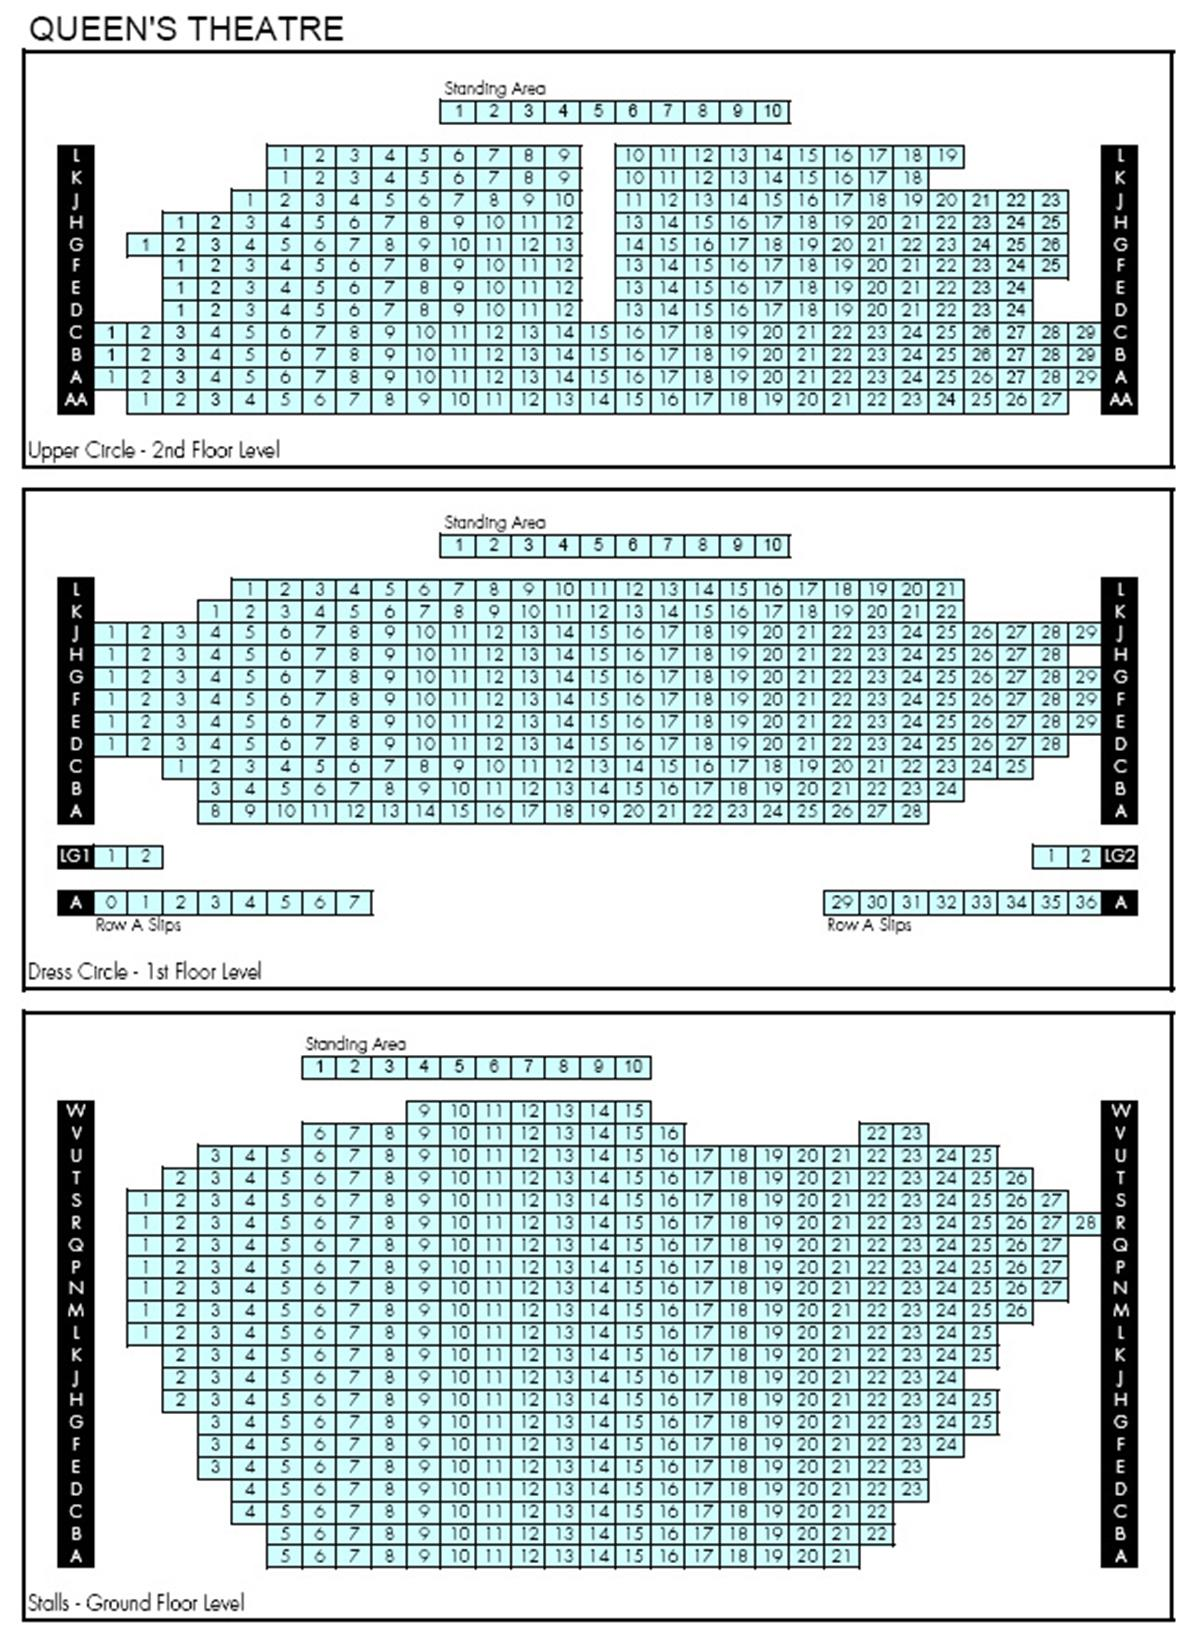 Les Mis Seating Chart Sydney State Theatre Seating Chart